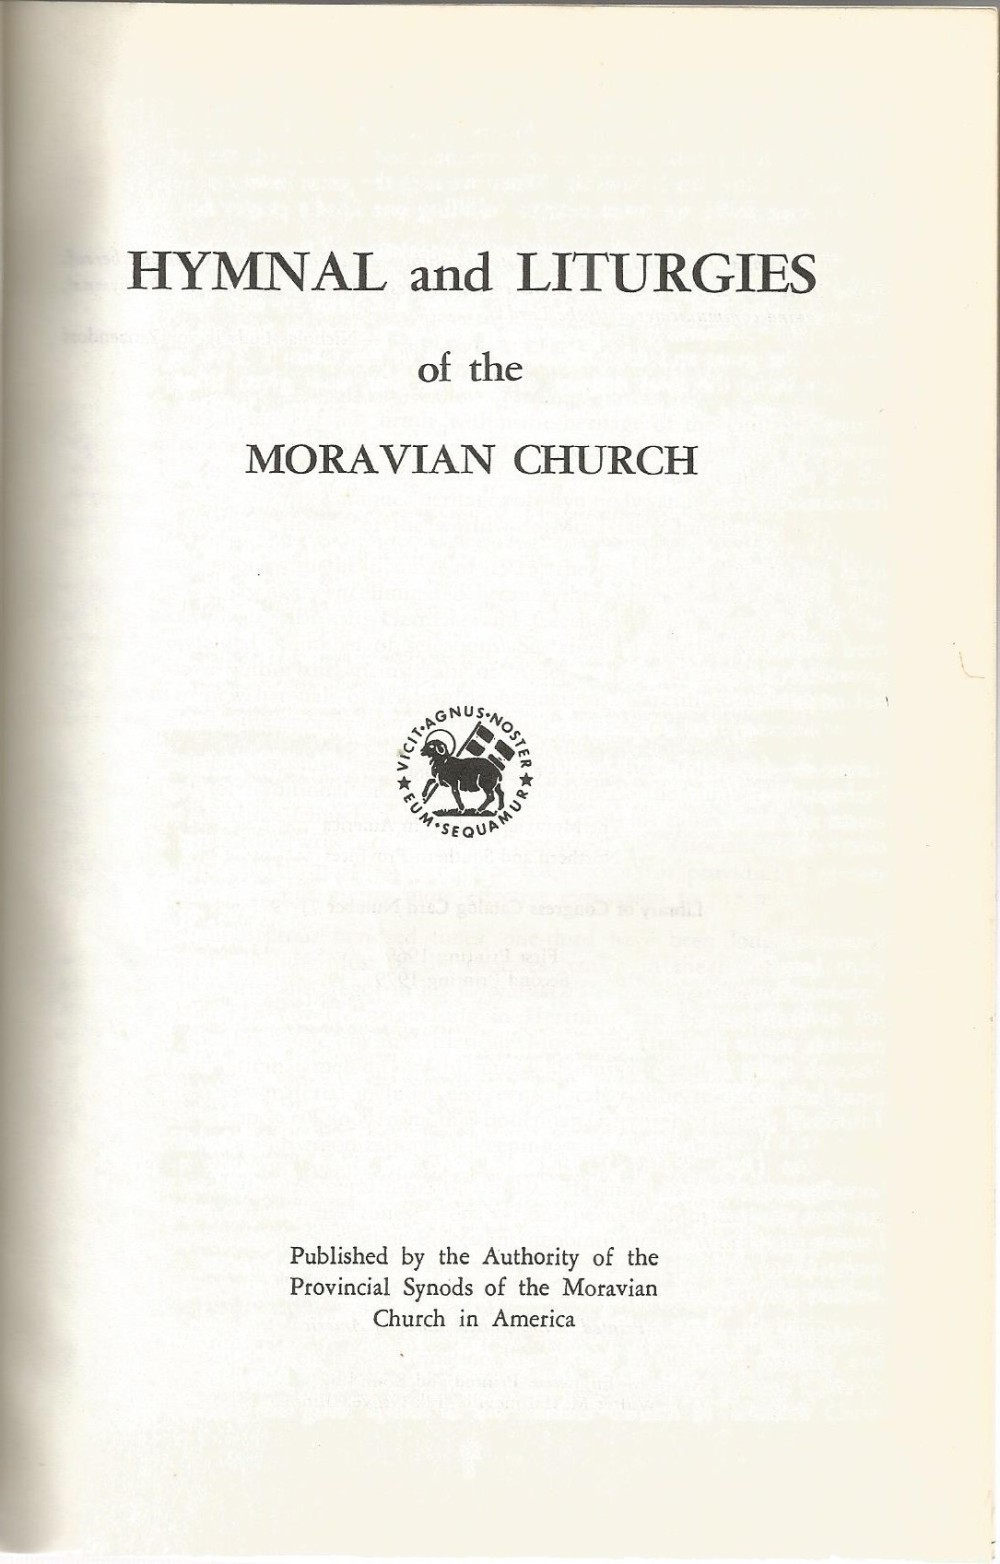 Hymnal and Liturgies Title Page